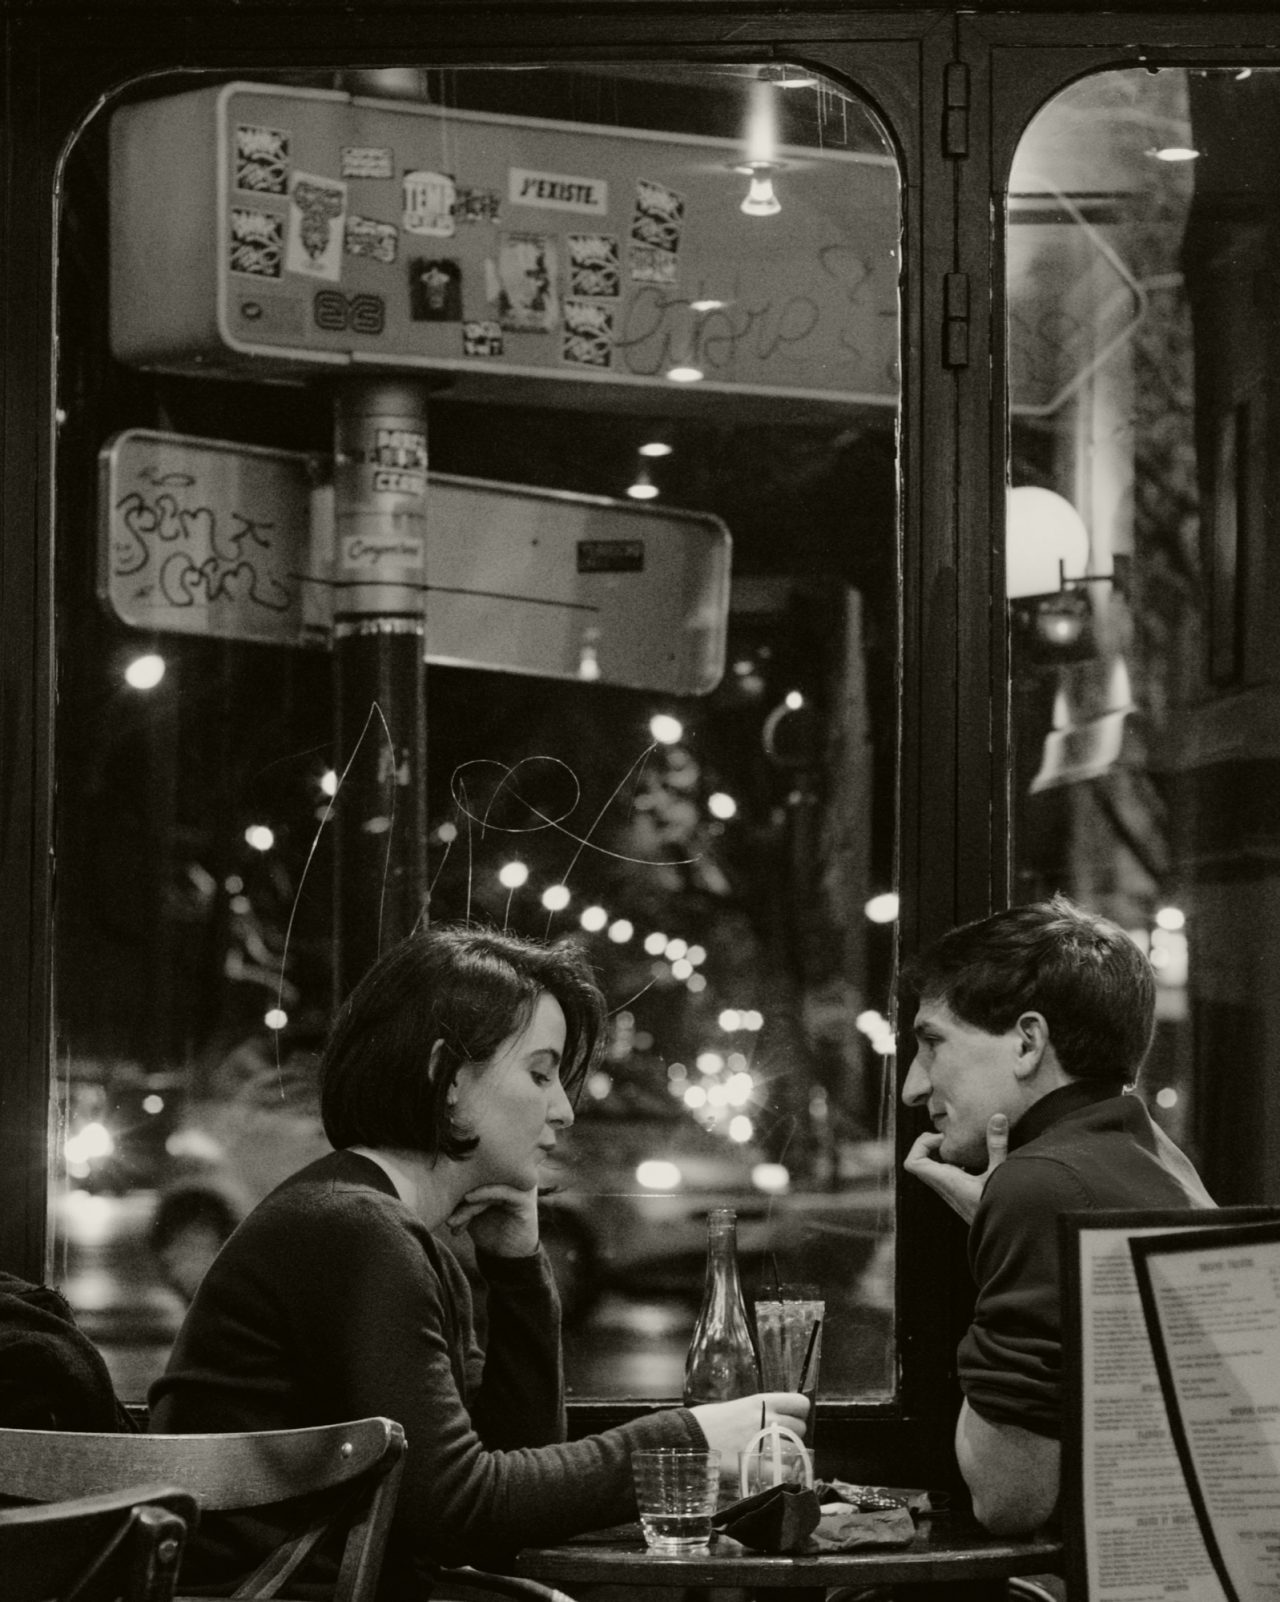 Black and white man and women on date at a cafe